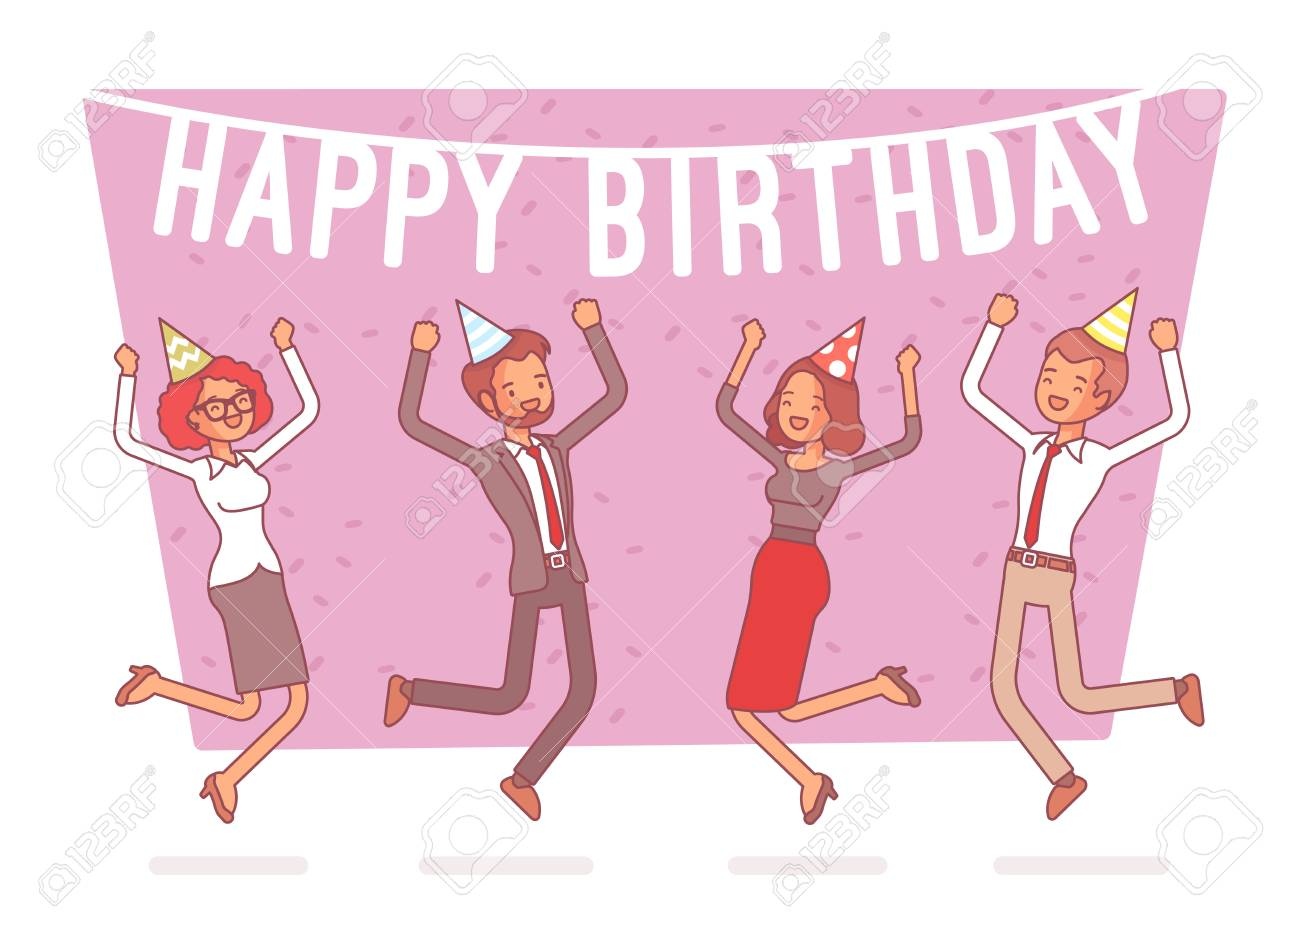 Happy Birthday Party In Office Festive Gathering Of Company Employees At Coworker Birth Anniversary Celebrating Excited At Corporate Event Vector Business Concept Line Art Illustration Royalty Free Cliparts Vectors And Stock Illustration